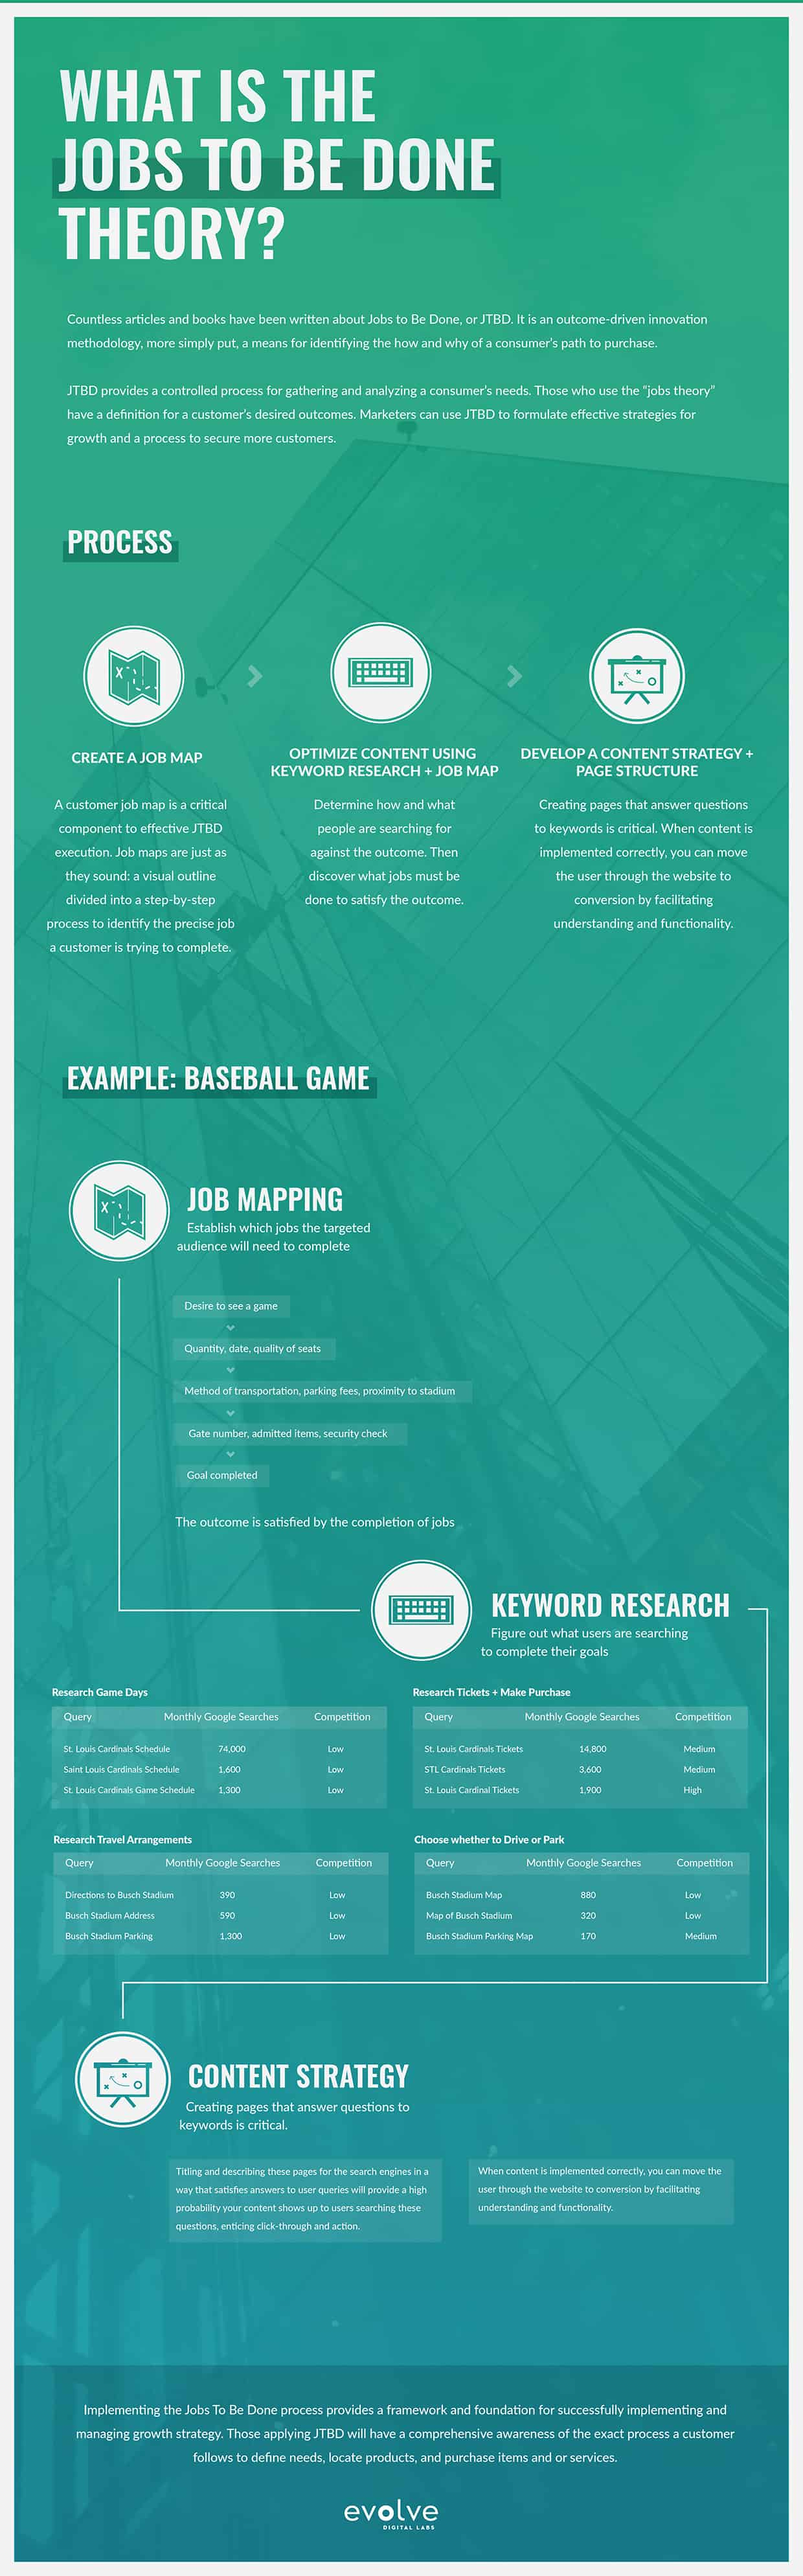 infographic explaining jobs to be done theory used by evolve digital labs